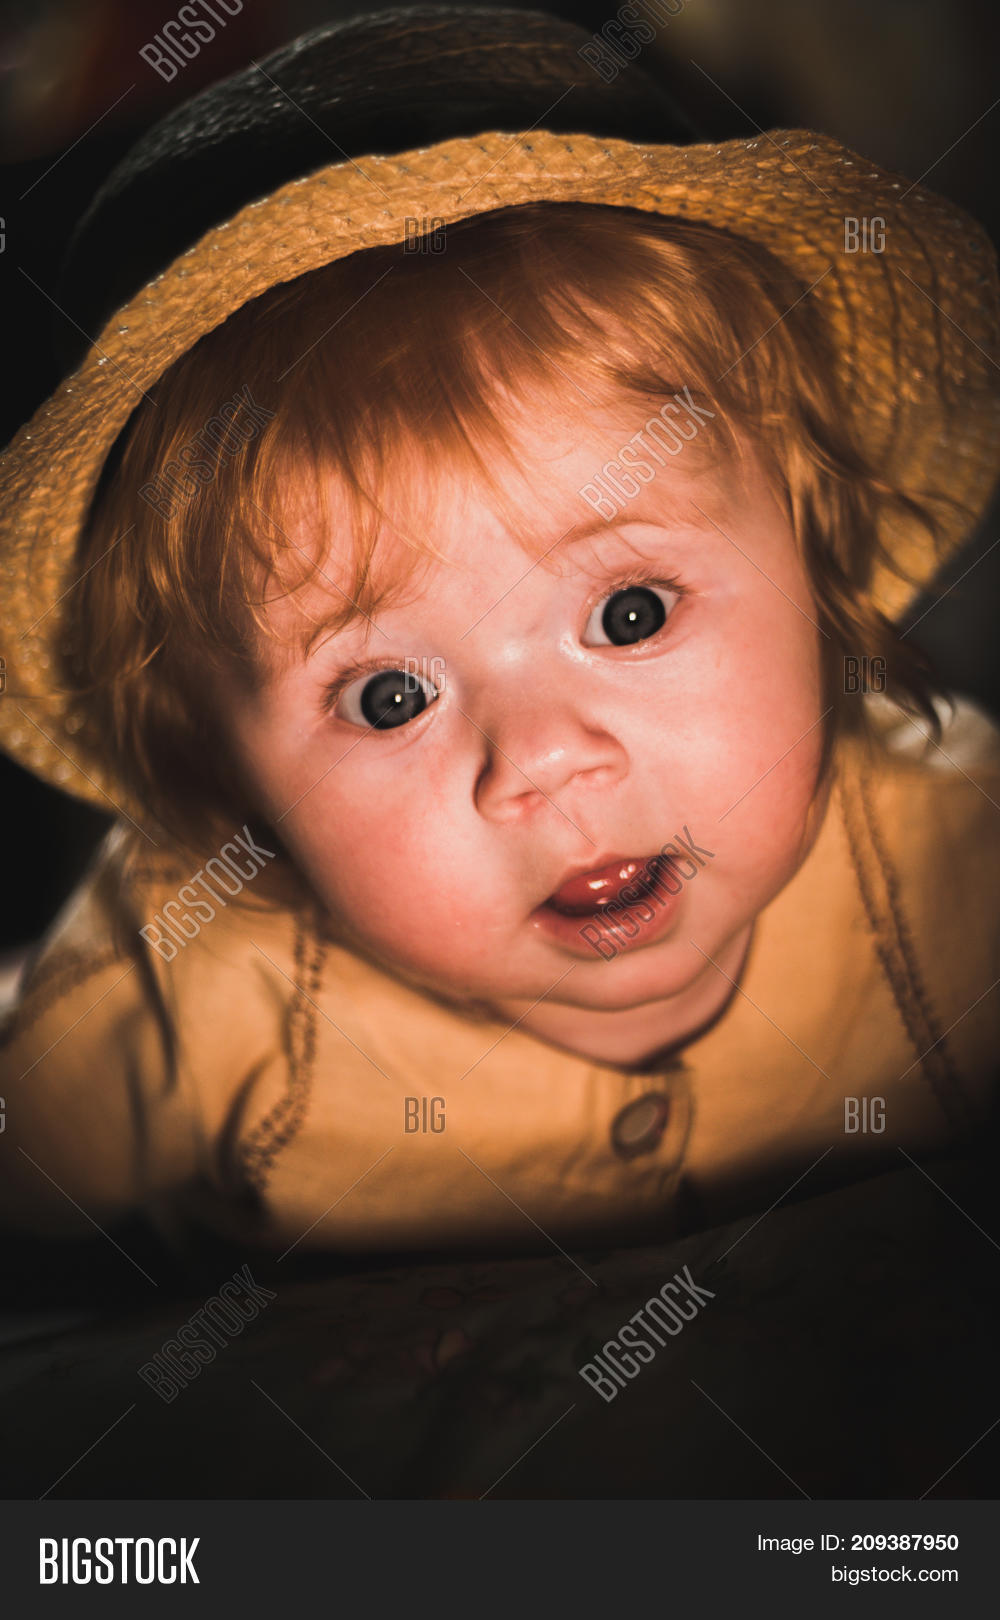 cute baby. sunlight on child's face image & photo | bigstock